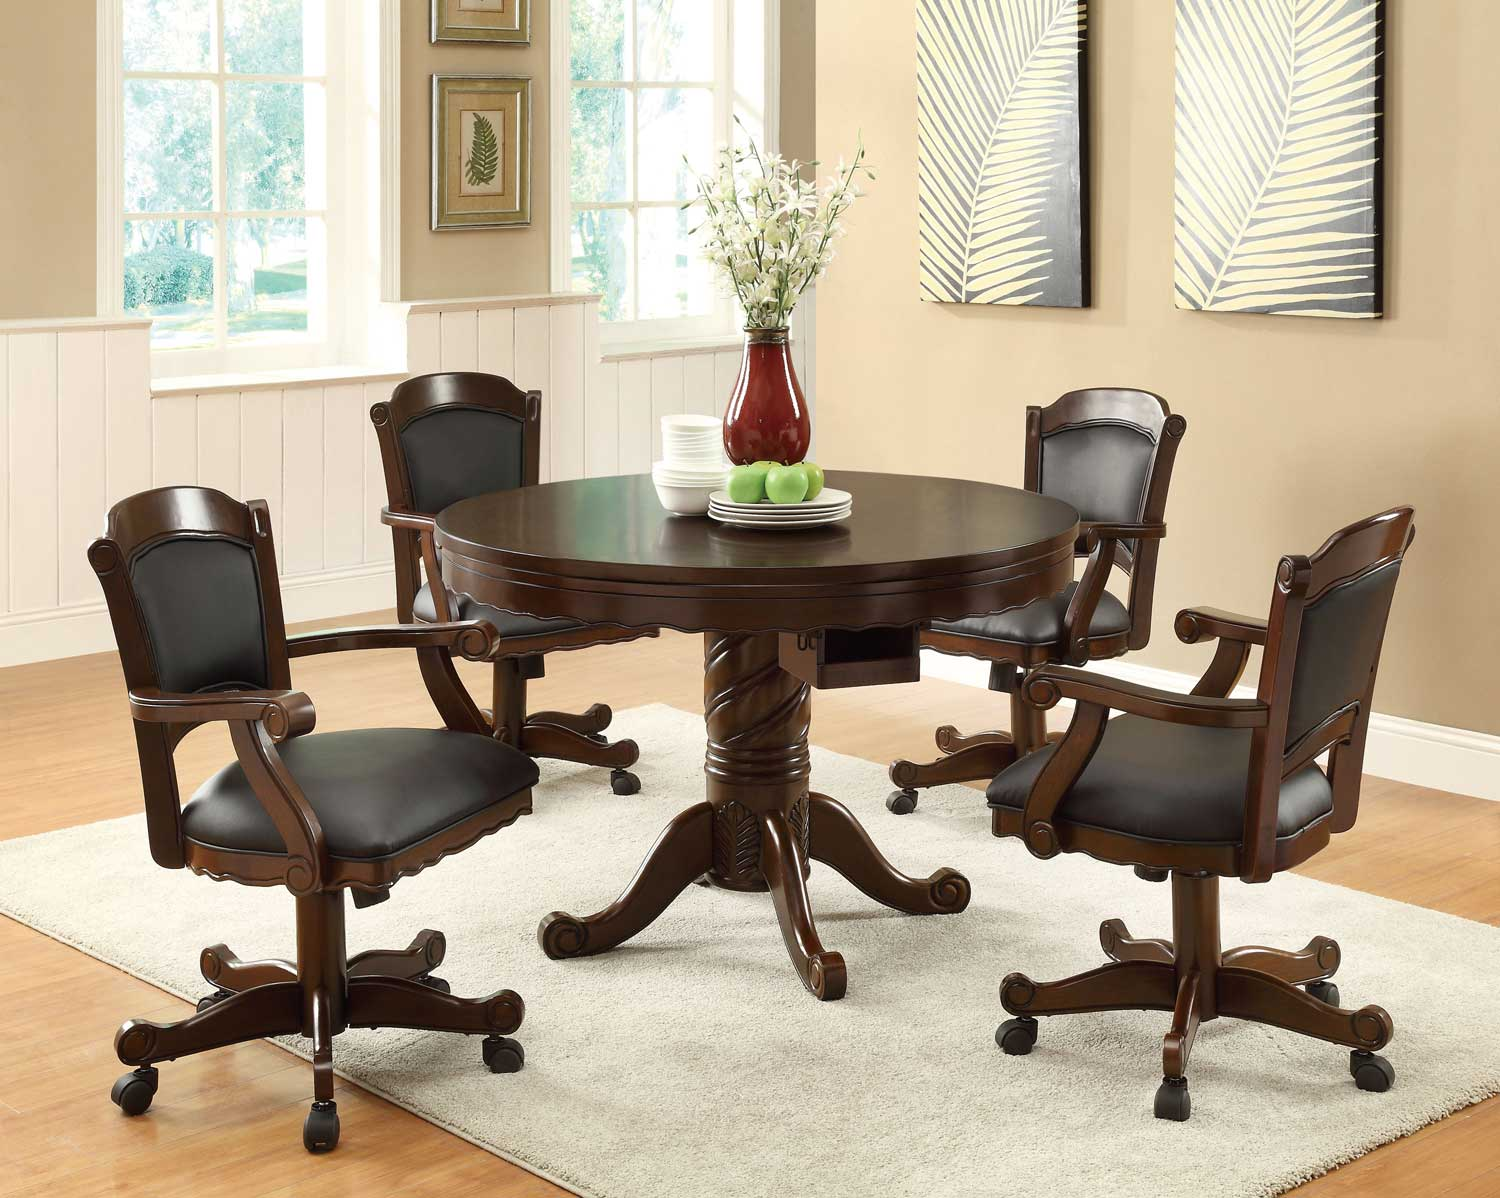 Coaster Turk 3-in-One Game Table Set - Cherry